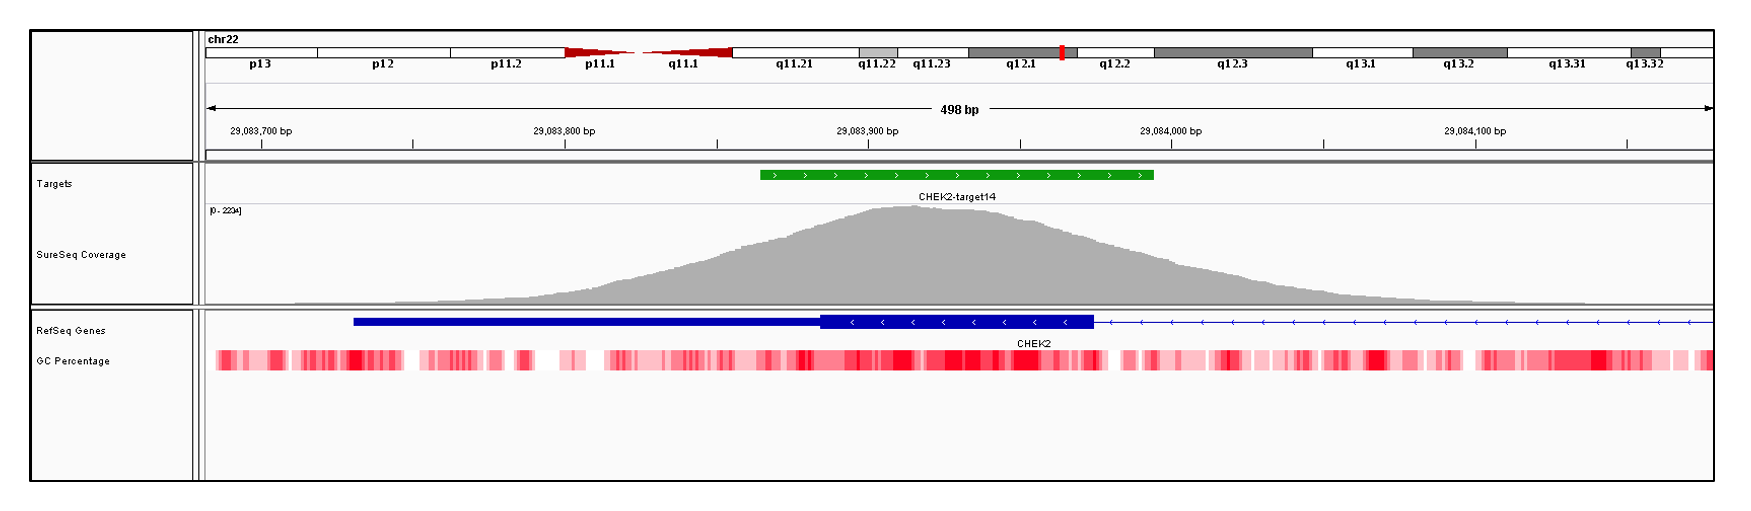 CHEK2 Exon 14 (hg19 chr22:29083731-29083974). Depth of coverage per base (grey). Targeted region (green). Gene coding region as defined by RefSeq (blue). GC percentage (red). Image